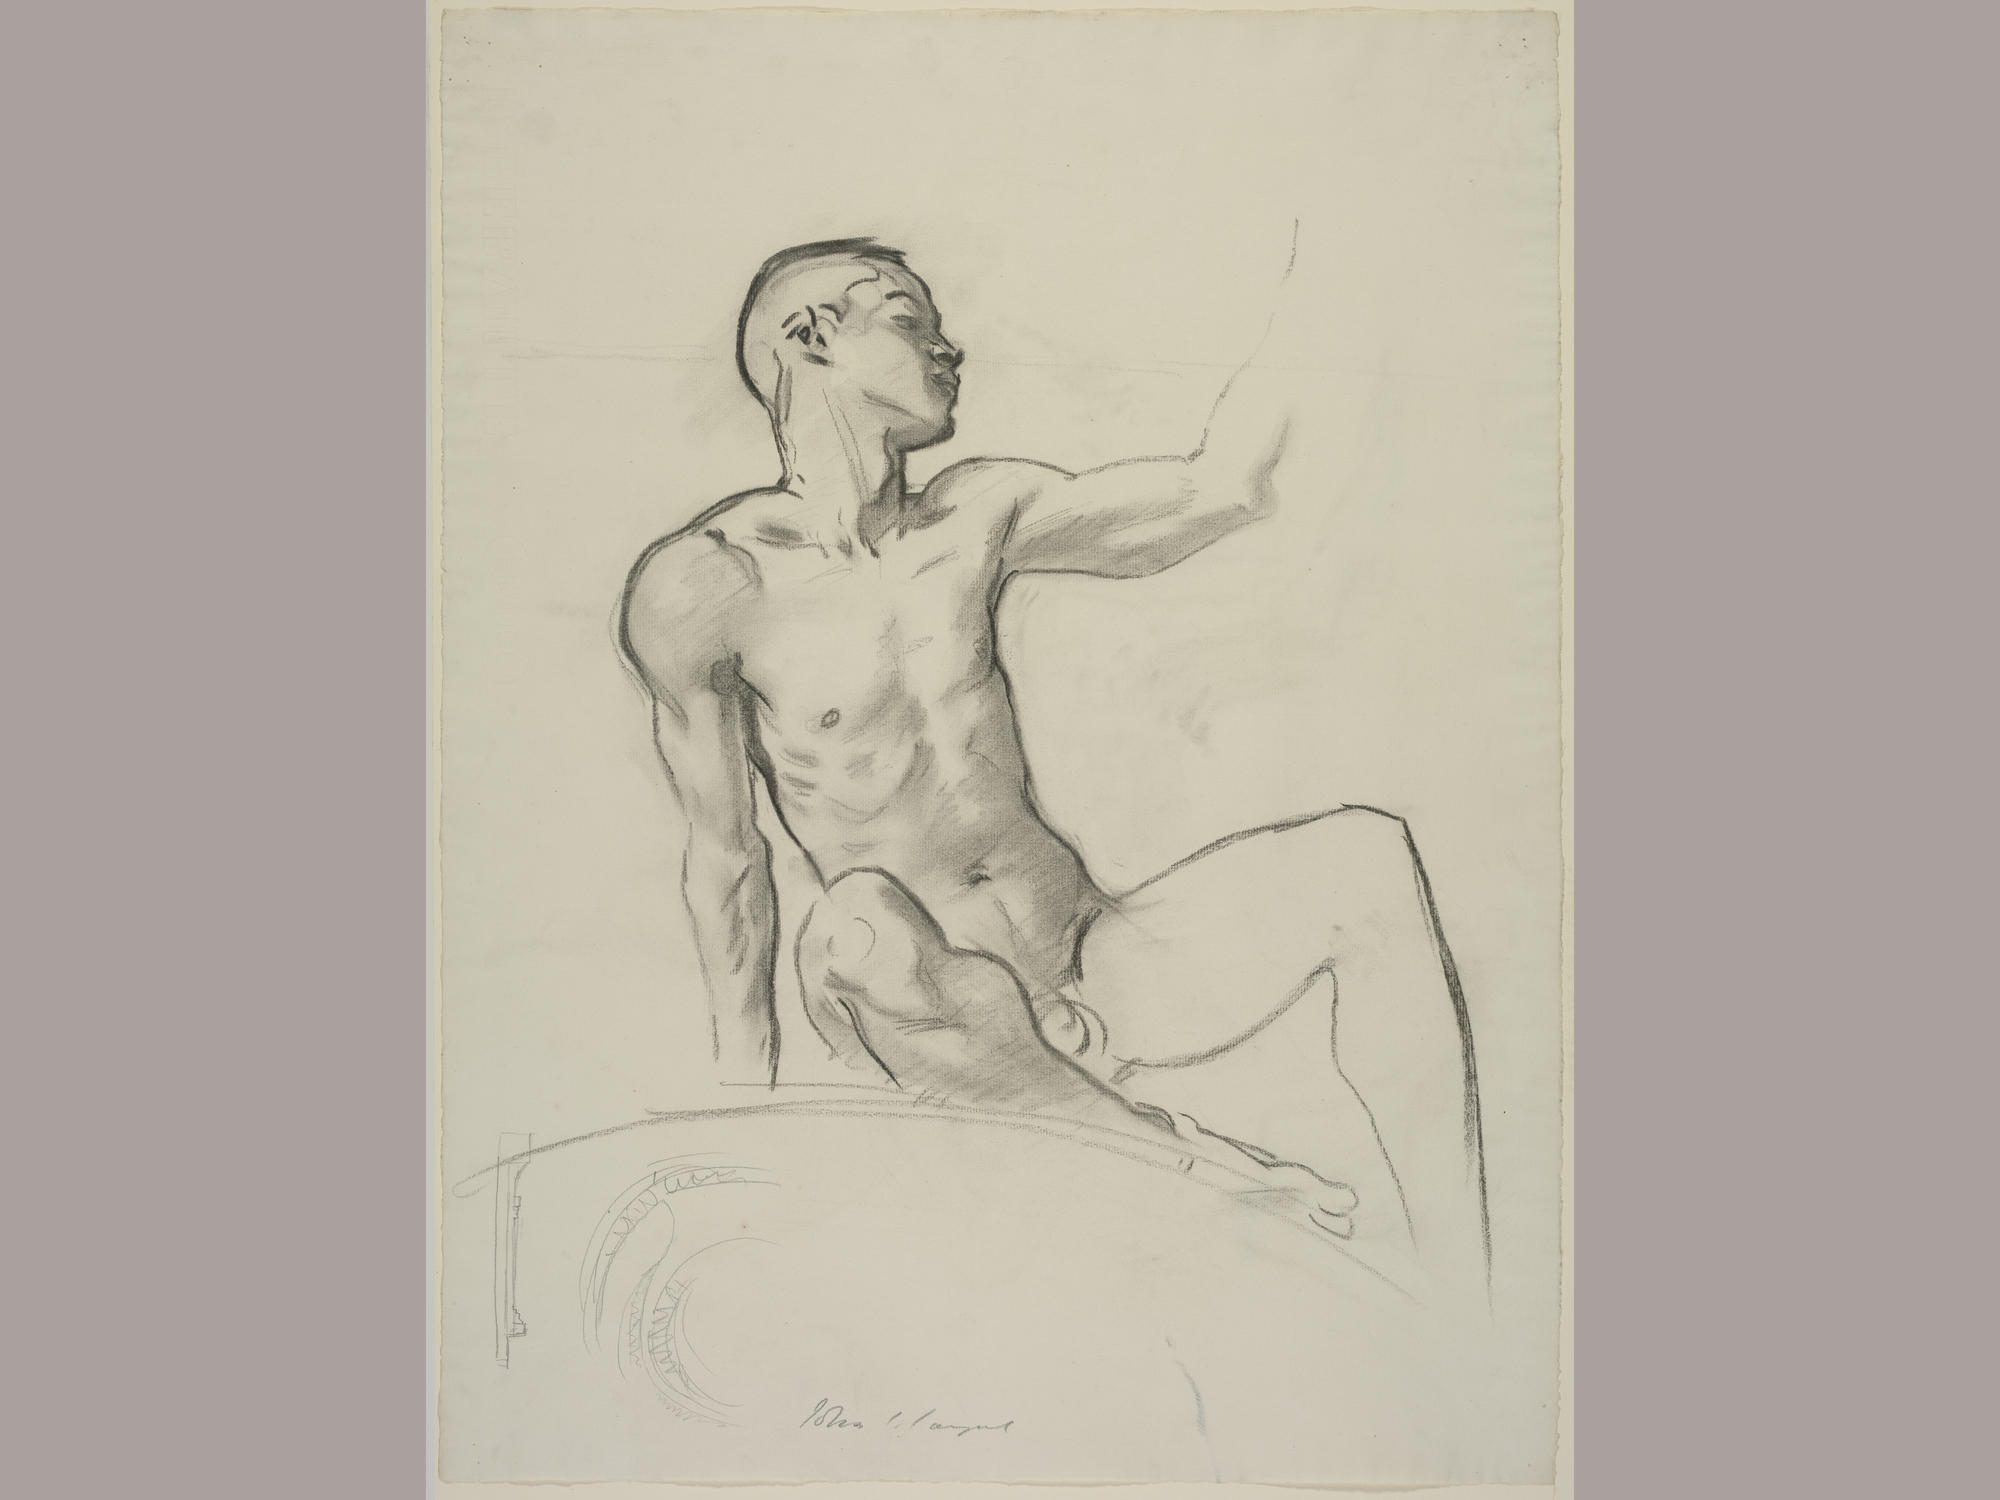 John Singer Sargent (American, 1856 - 1925), Study of a Seated Male Nude for a Cartouche for the Rotunda of the Museum of Fine Arts, Boston, 1917-1921. Charcoal on paper, 63.3 x 48 cm (24 15/16 x 18 7/8 in.) Isabella Stewart Gardner Museum, Boston (S.G.Sar.4.1.5)